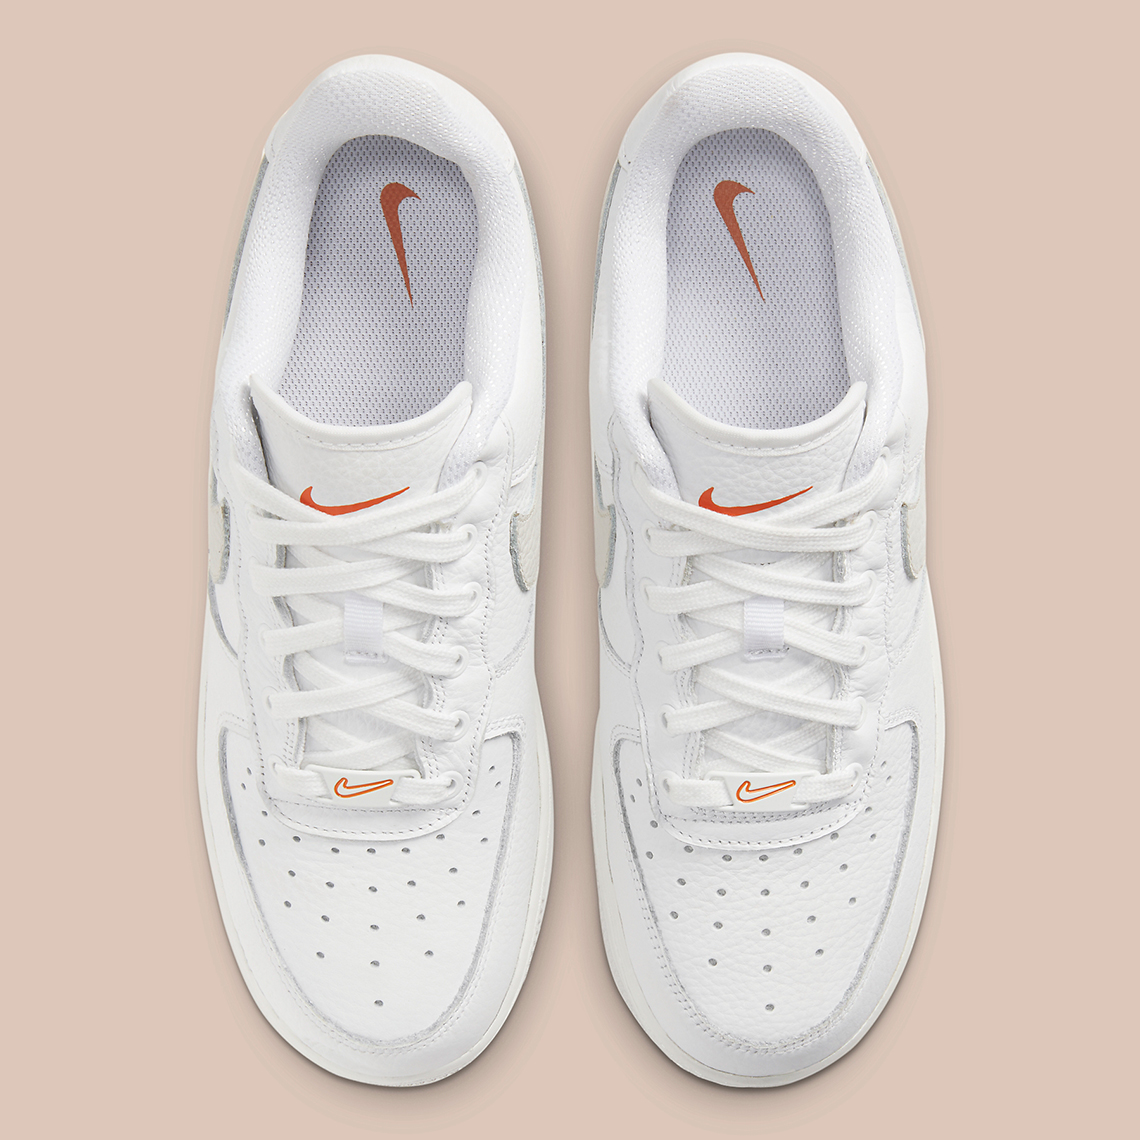 Nike Miesten Nike Air Force 1 07 Style Sneakers With